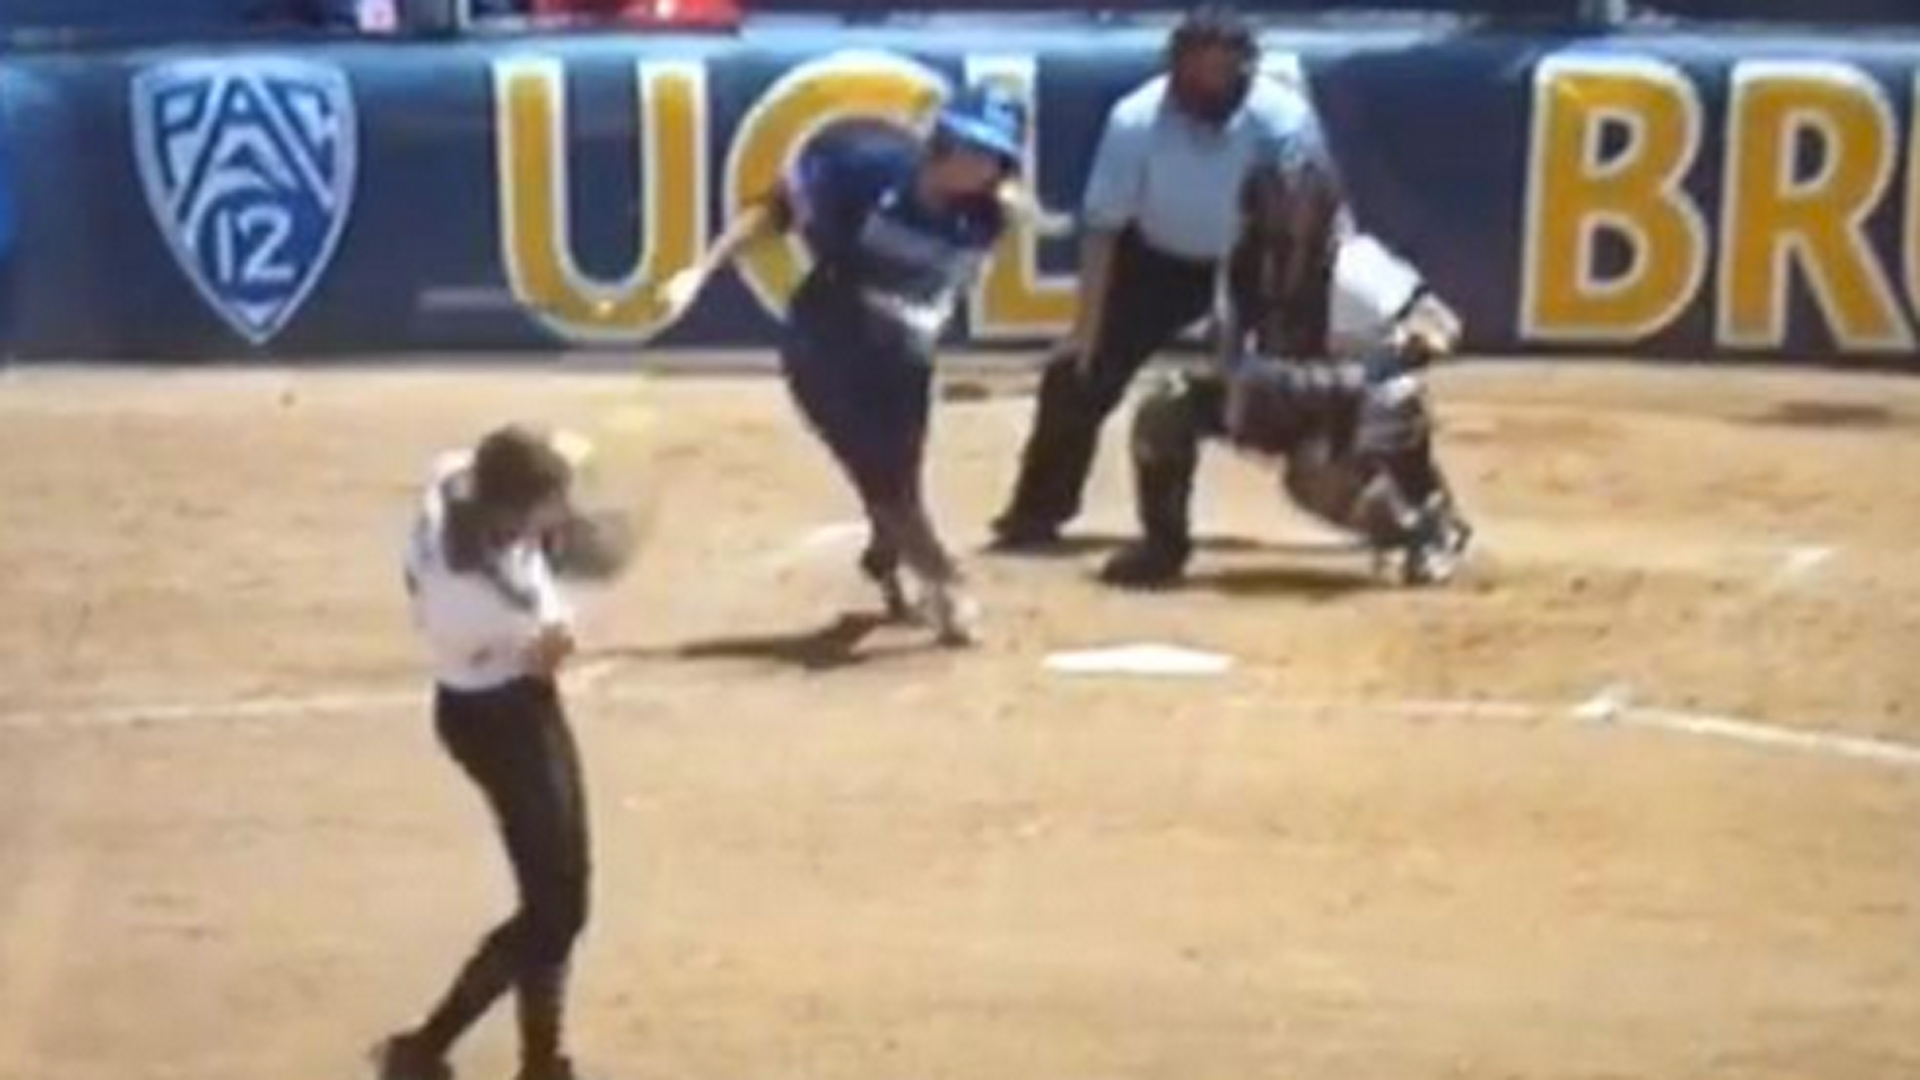 Missouri softball pitcher exits Super Regional after getting hit in head with line drive